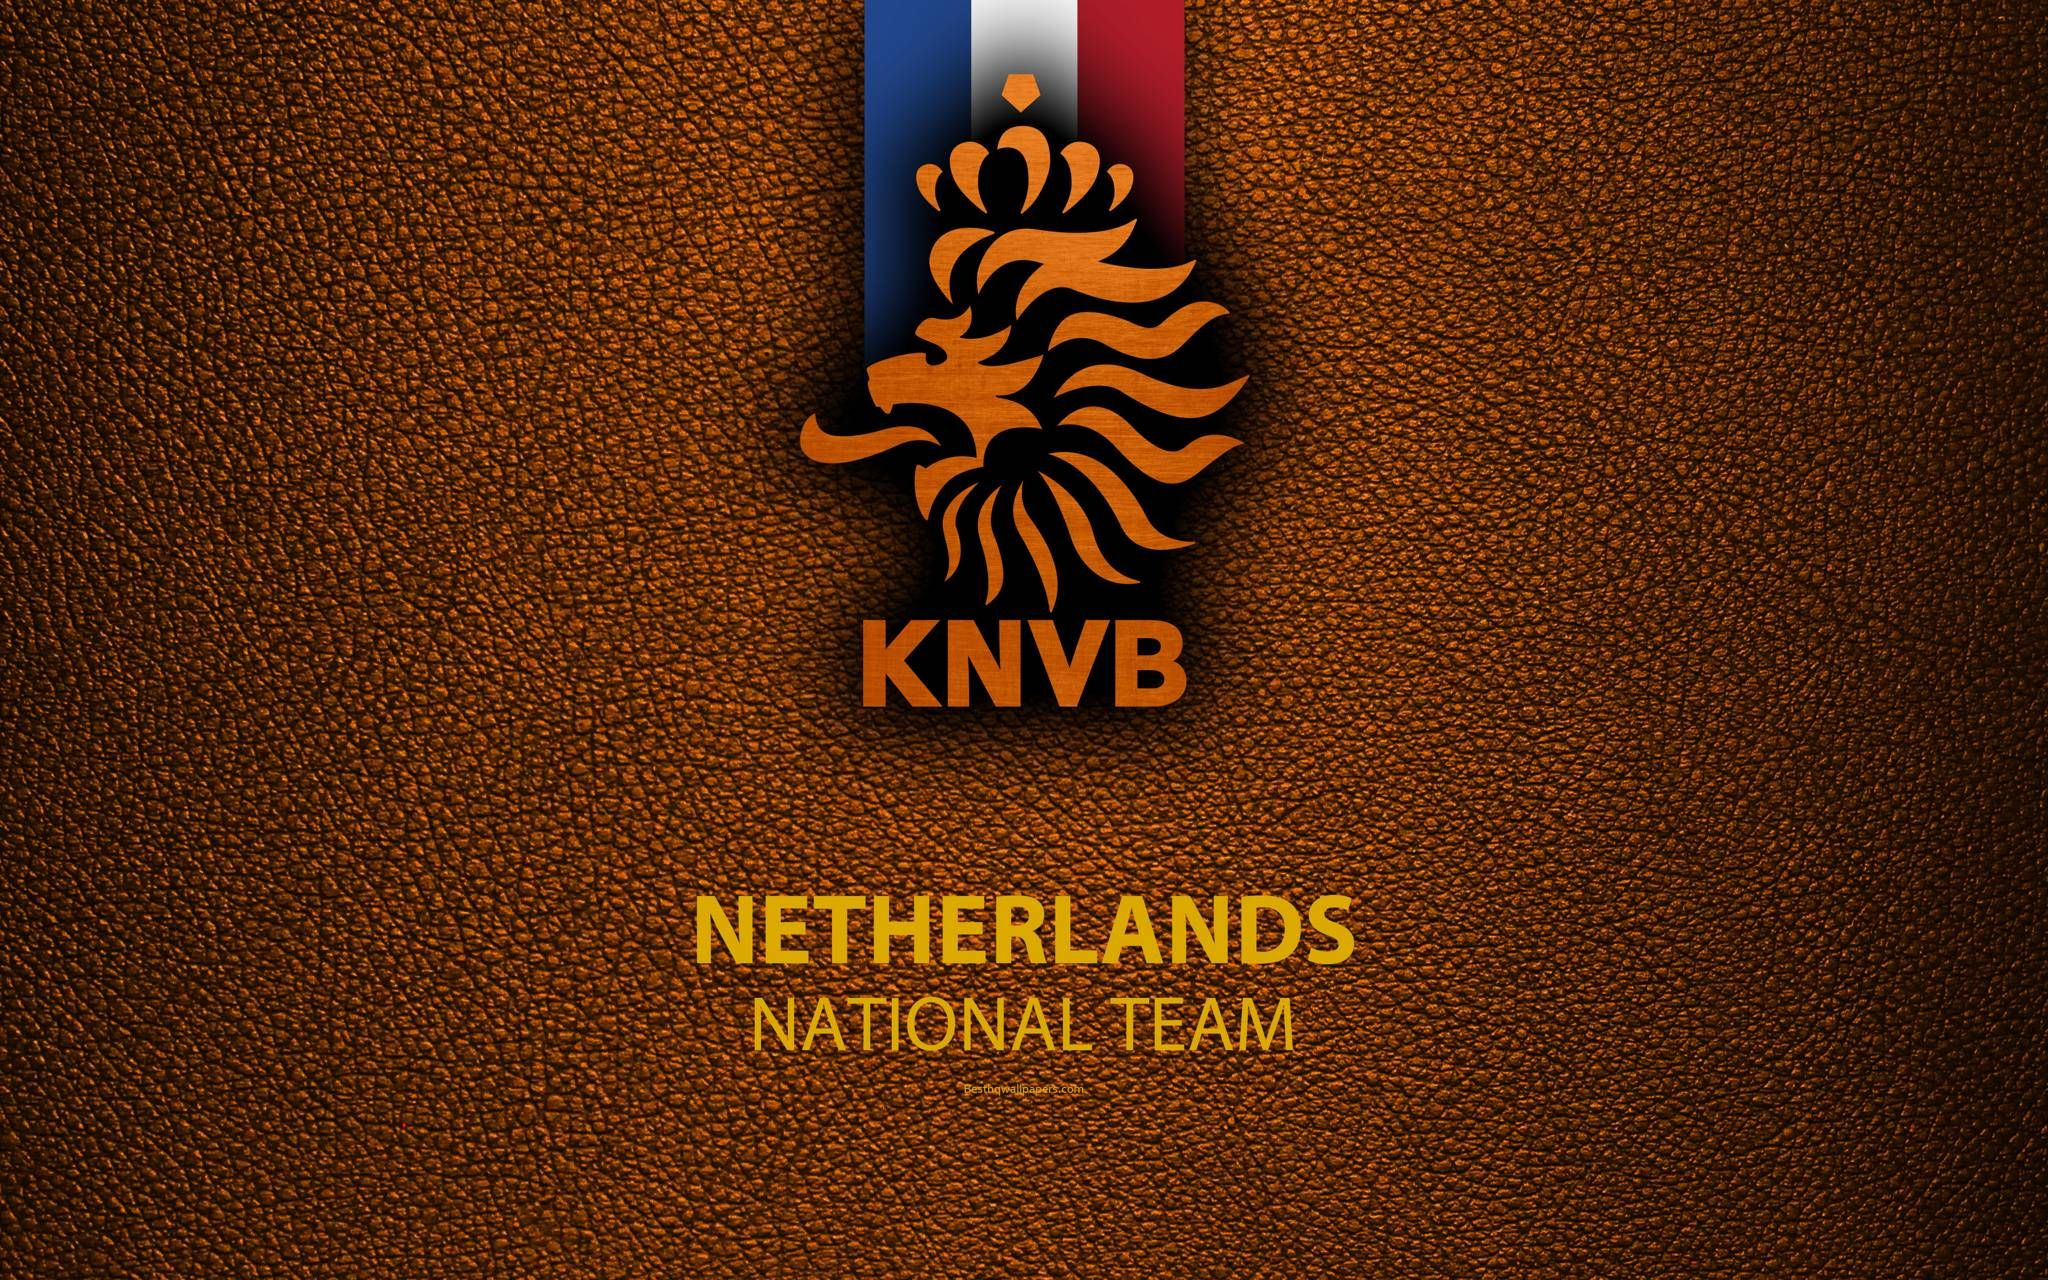 Download Netherlands Football Wallpaper By Elnaztajaddod 10 Free On Zedge Now Browse Millions Of Popu National Football Teams Football Wallpaper Football